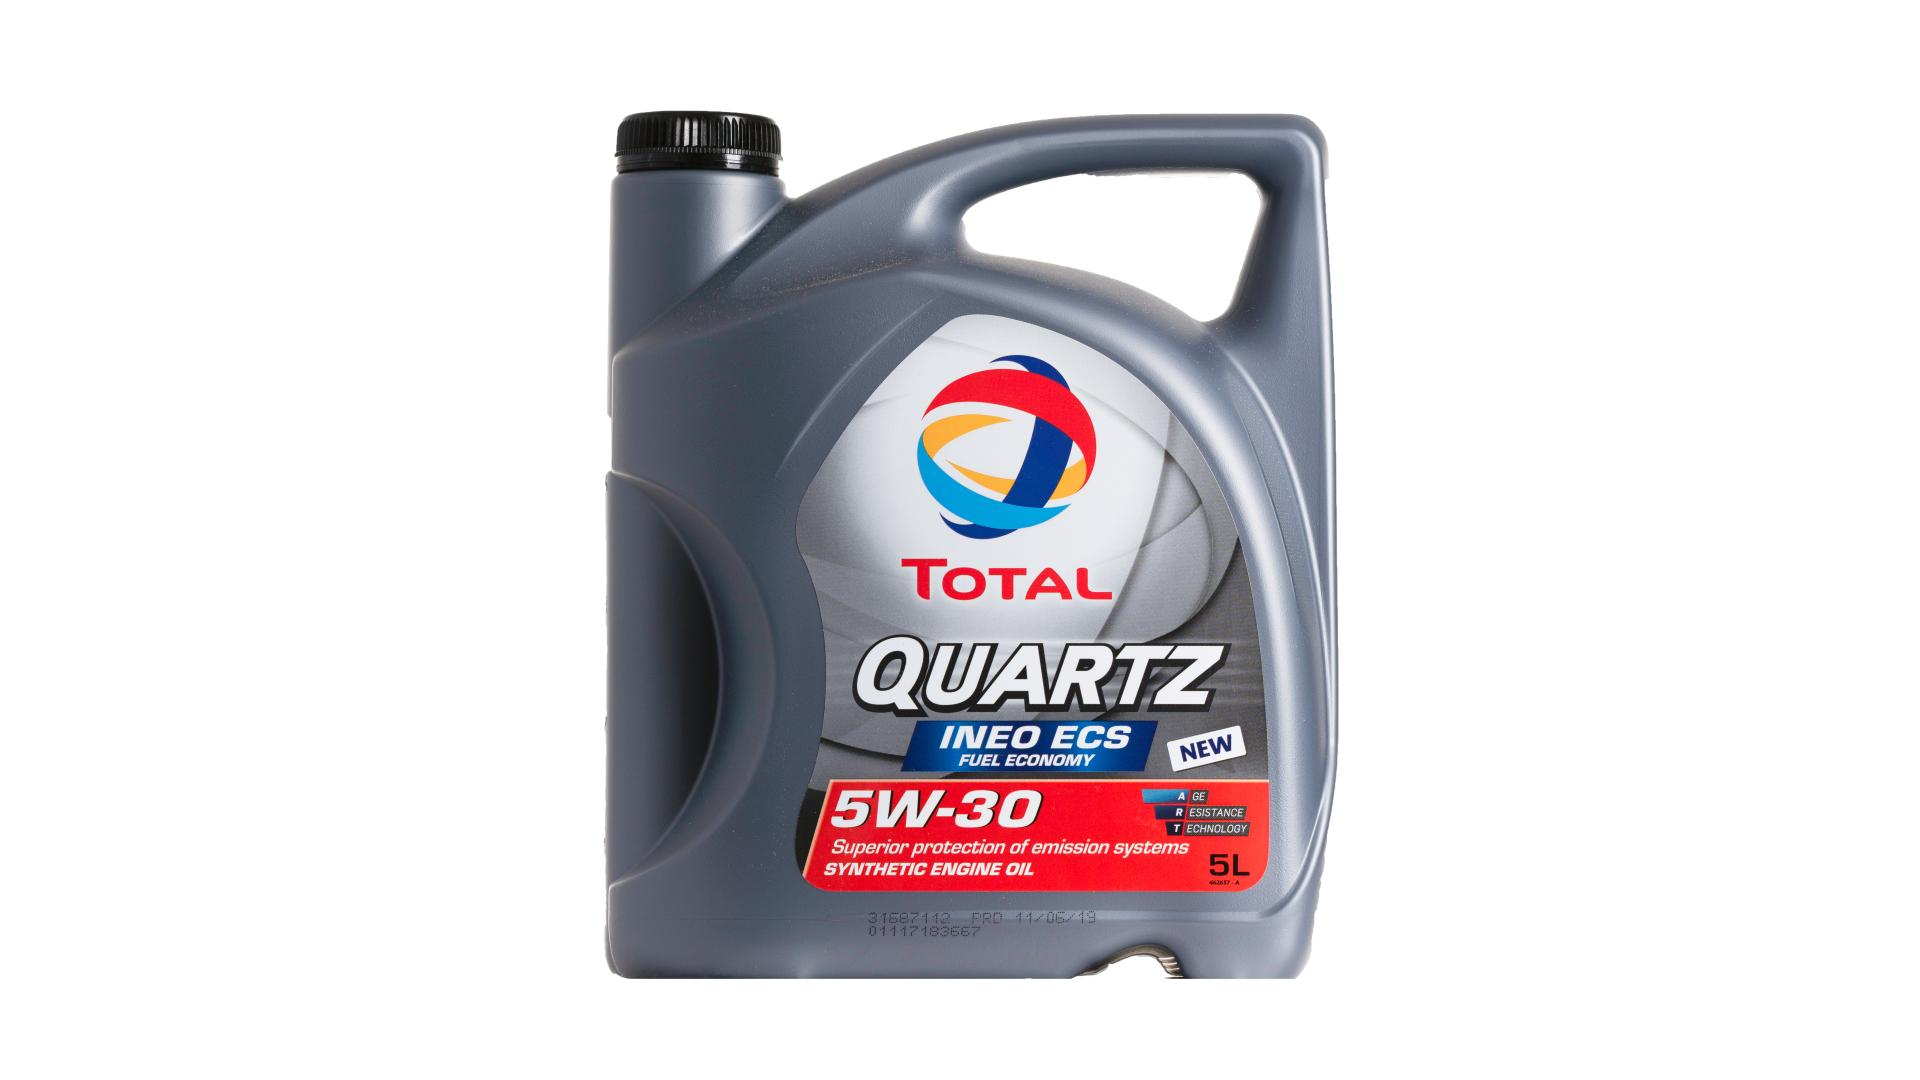 Total 5w-30 Quartz Ineo Ecs 5L (151261)